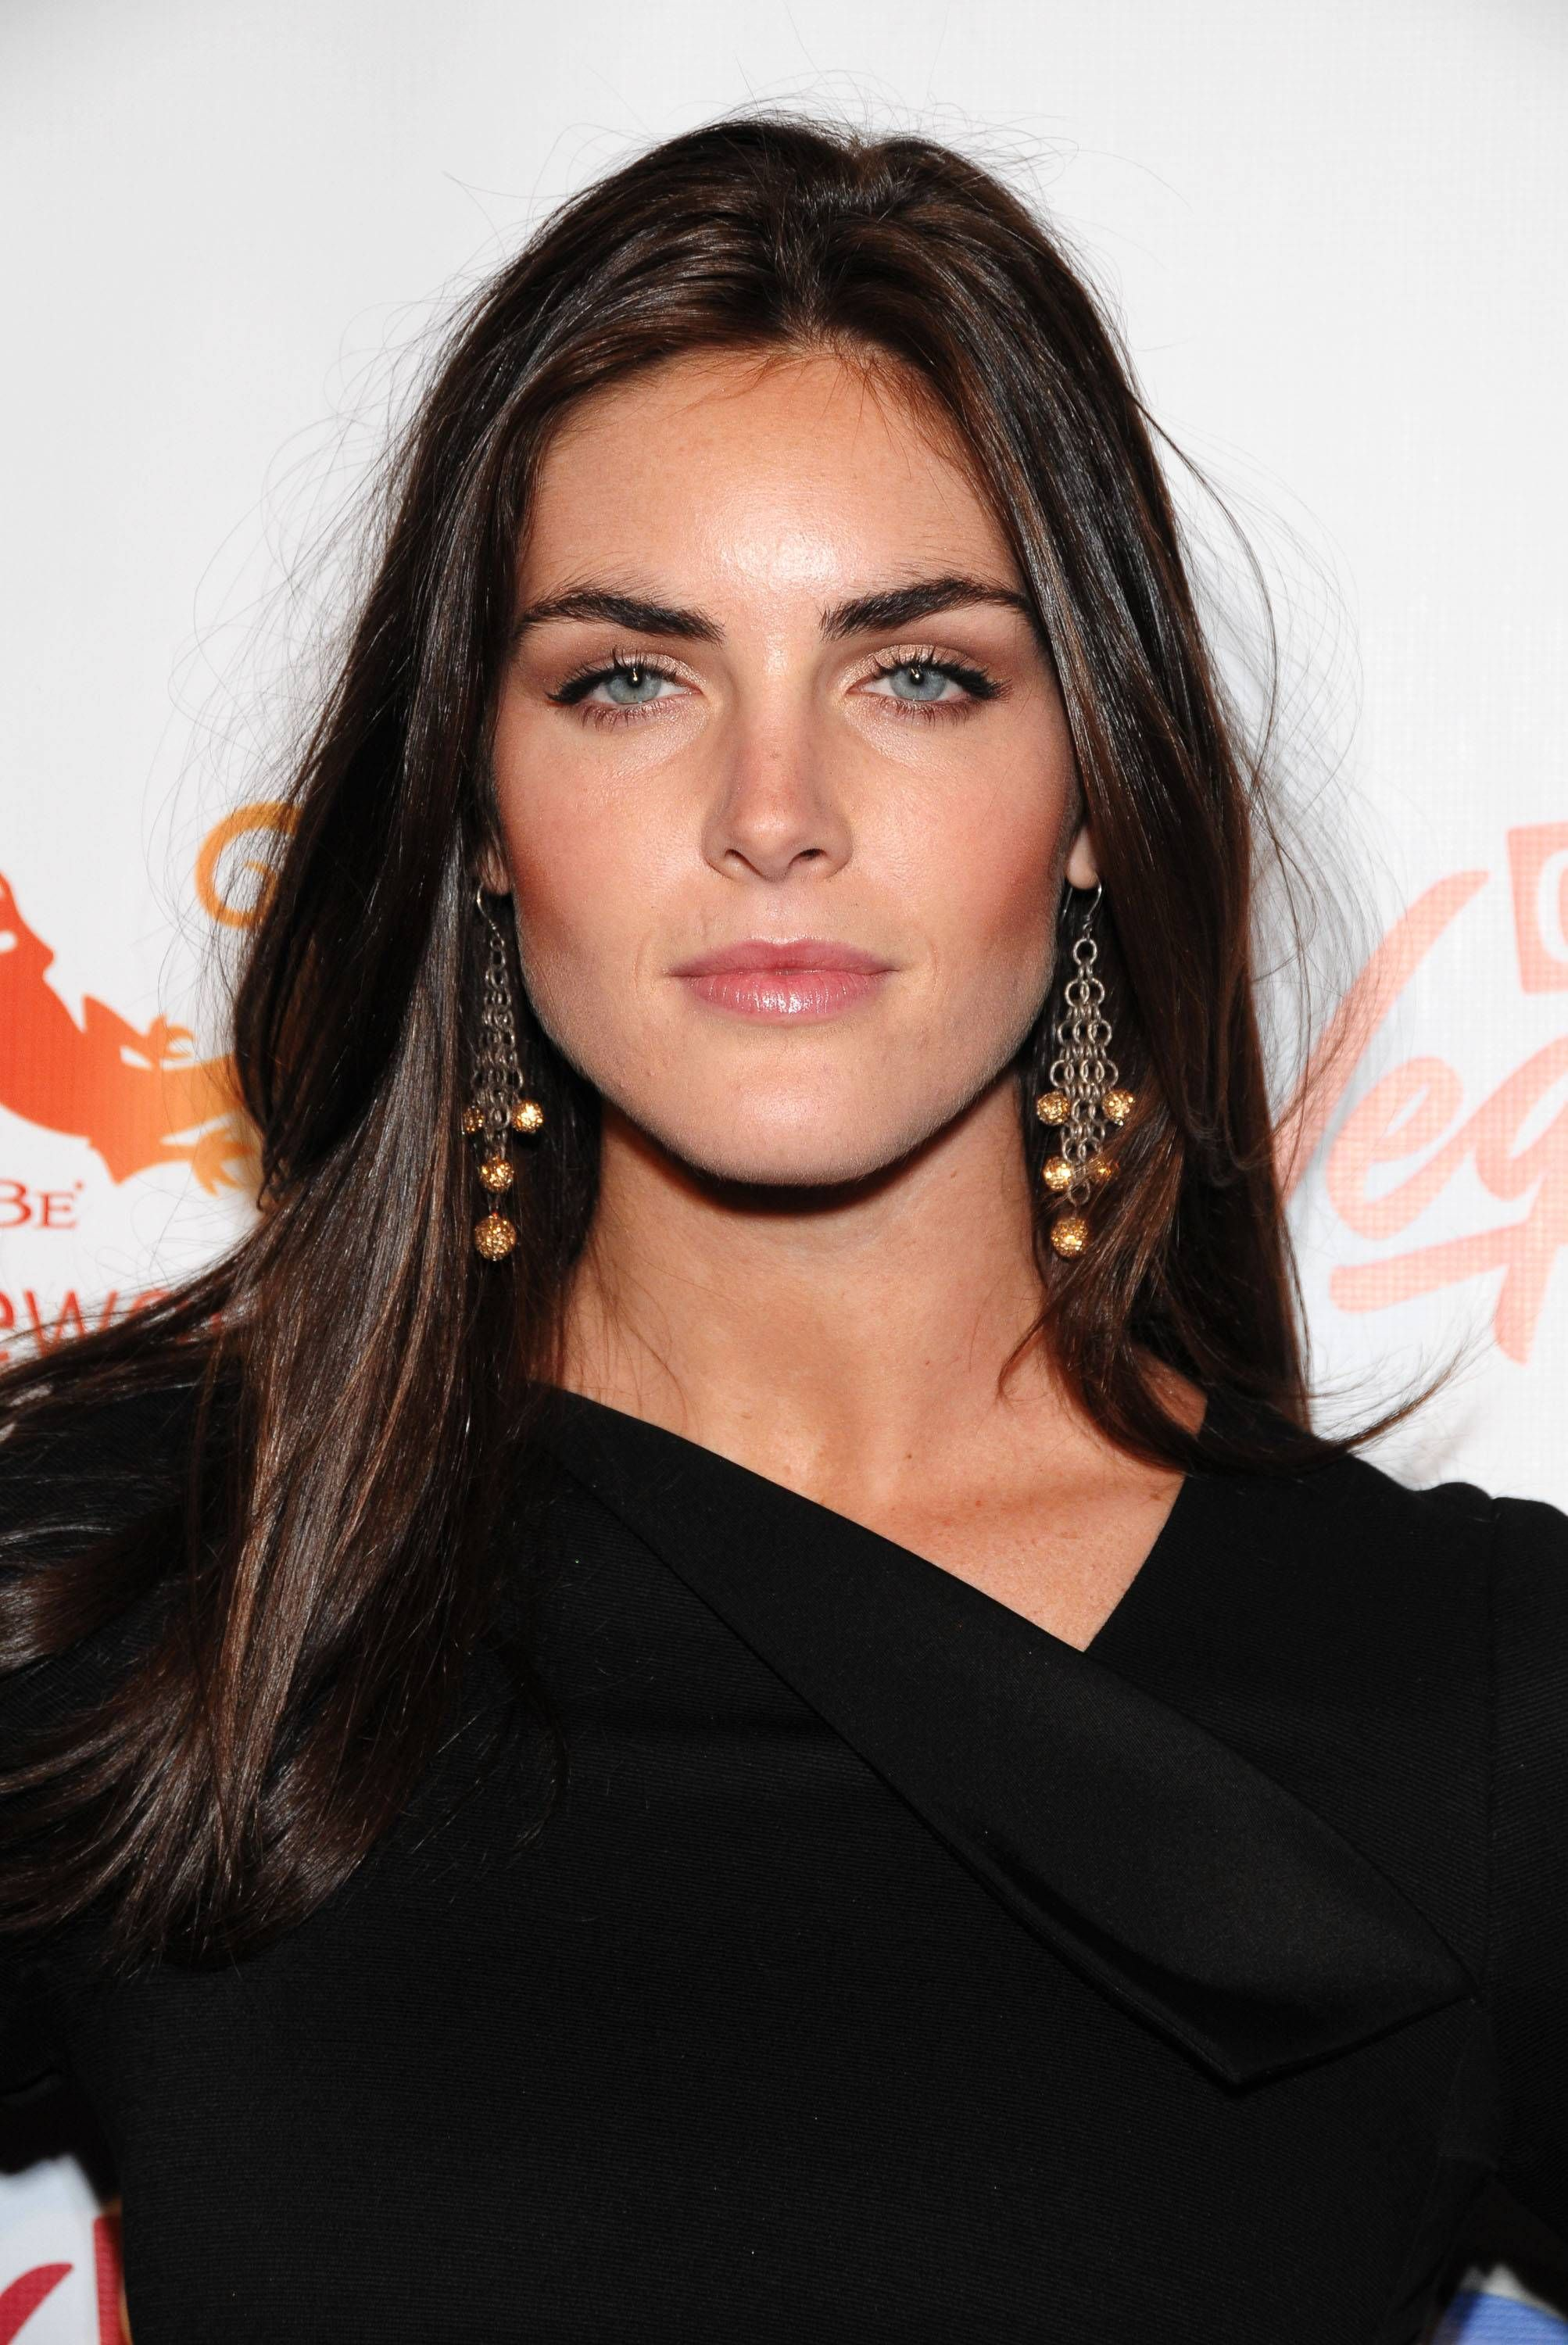 Cleavage Hilary Rhoda nude (64 photo), Pussy, Fappening, Feet, butt 2018